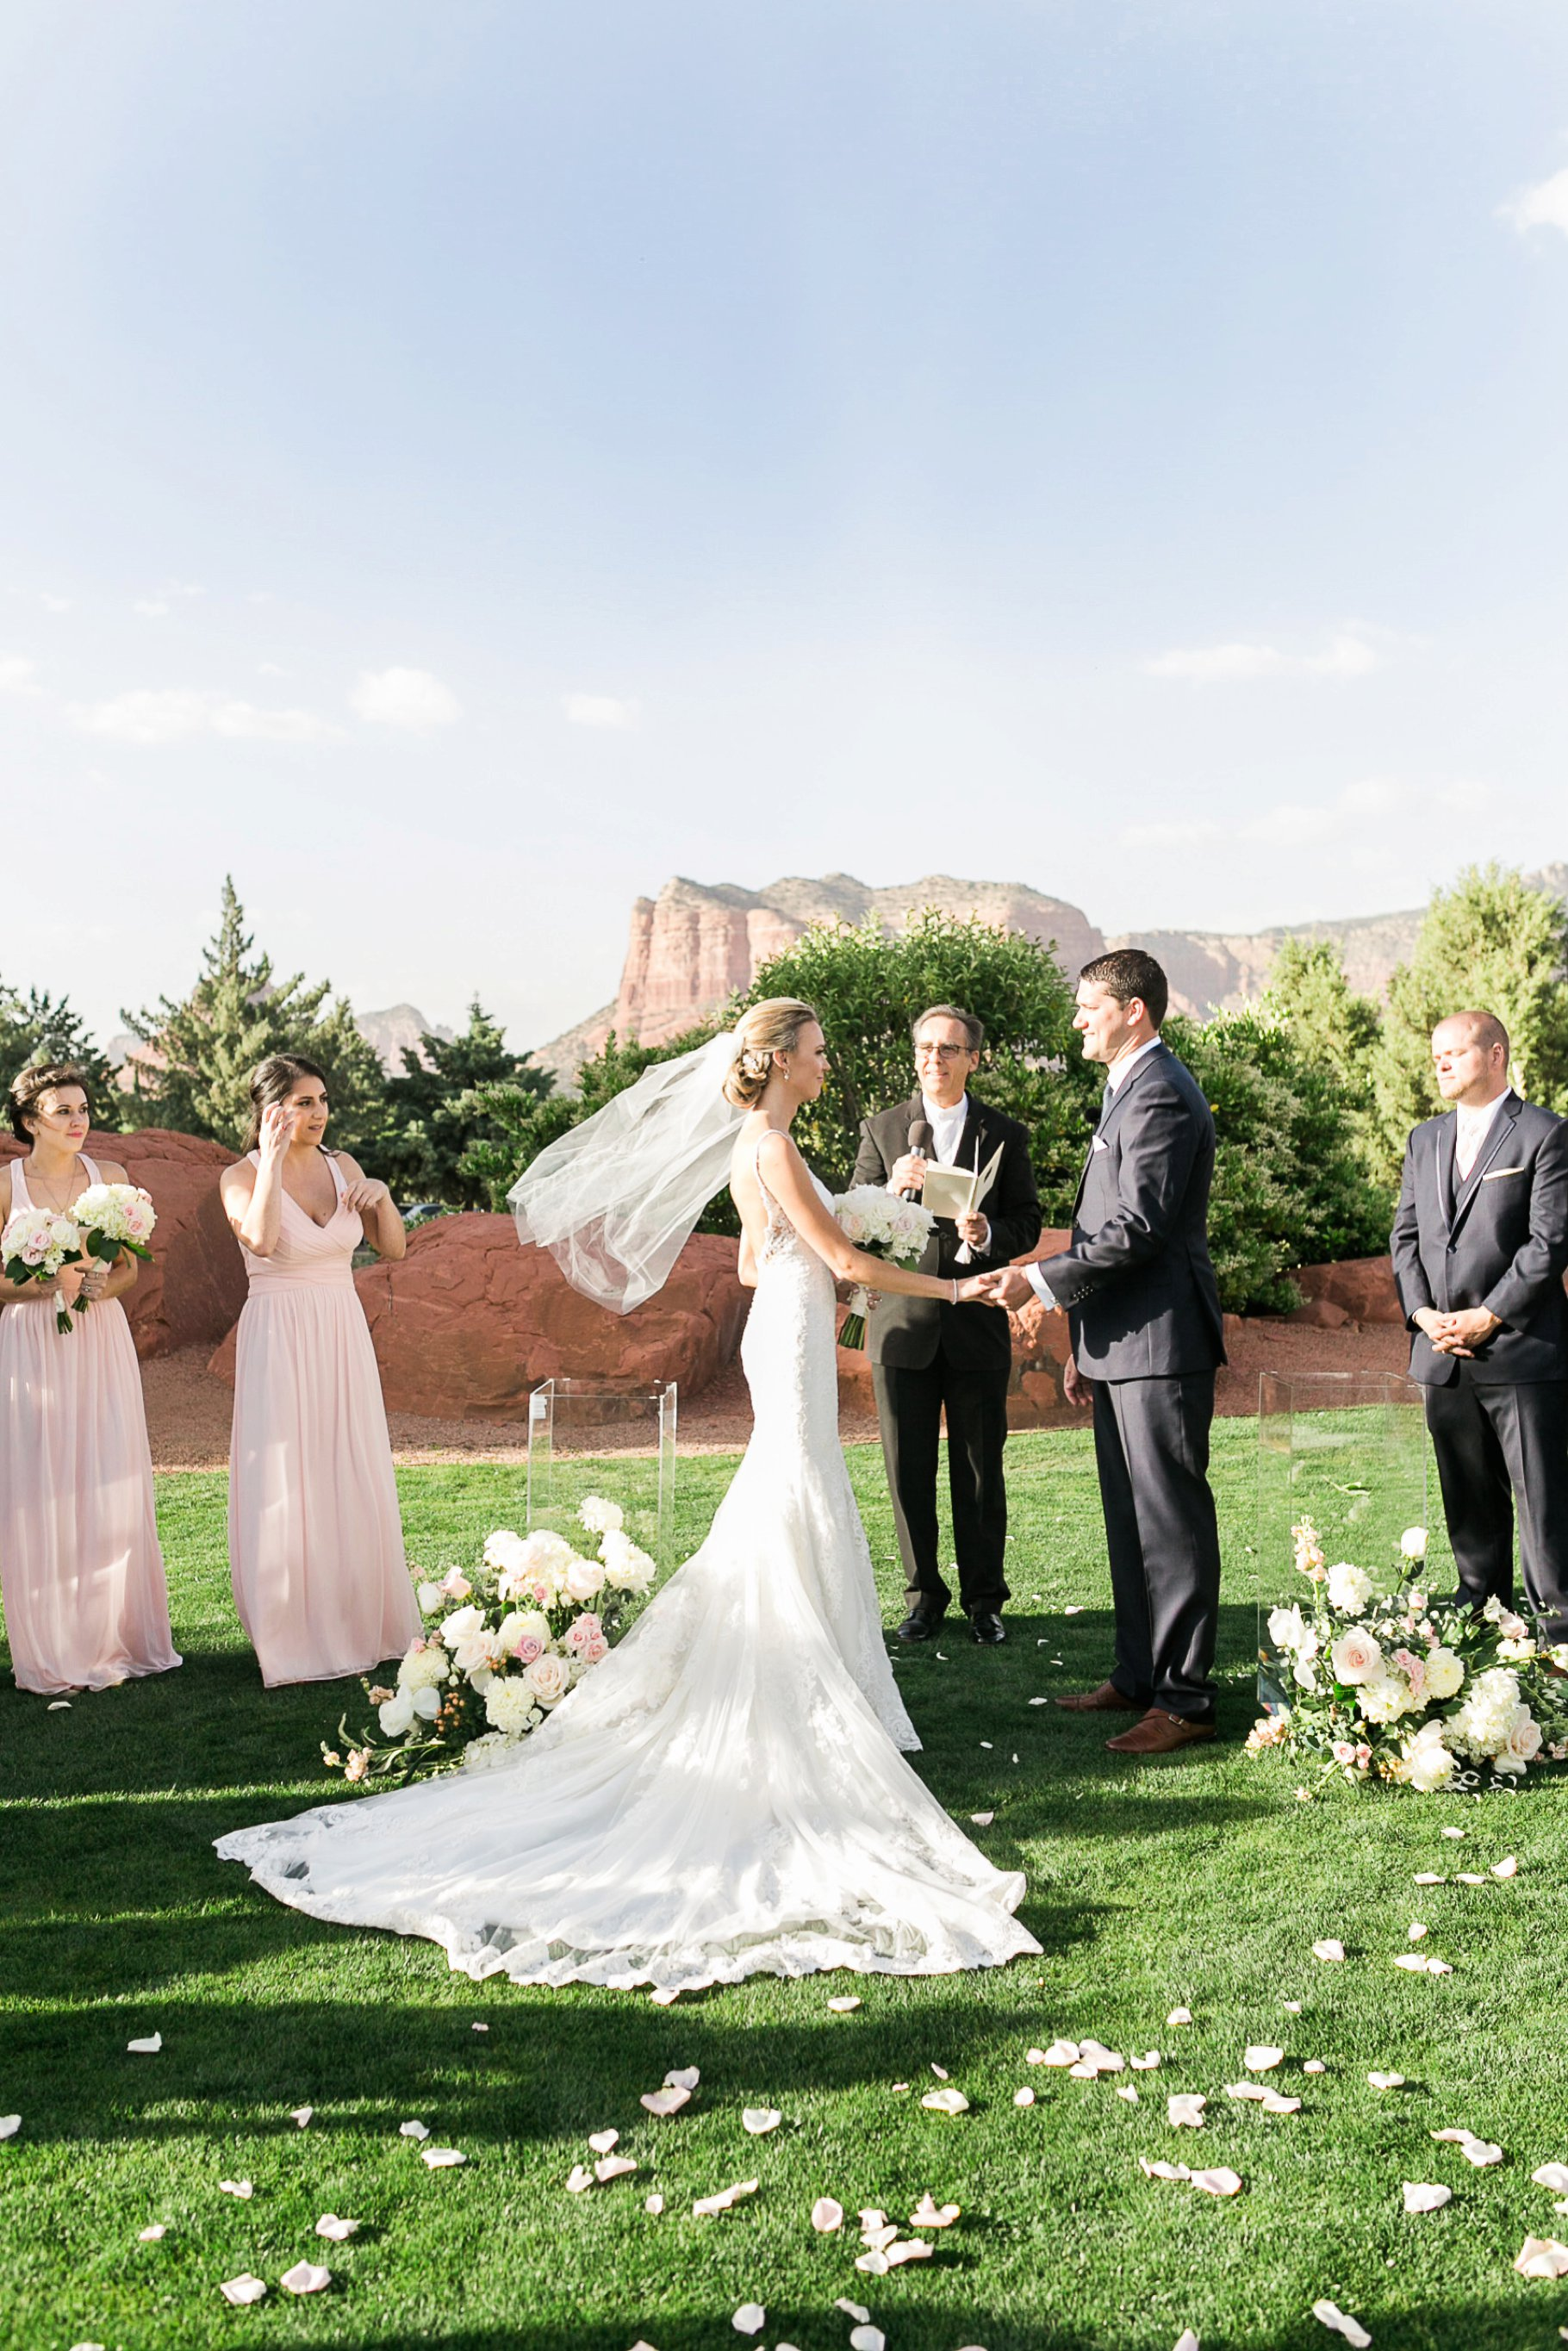 Windy day at Sedona Golf Resort Wedding Ceremony